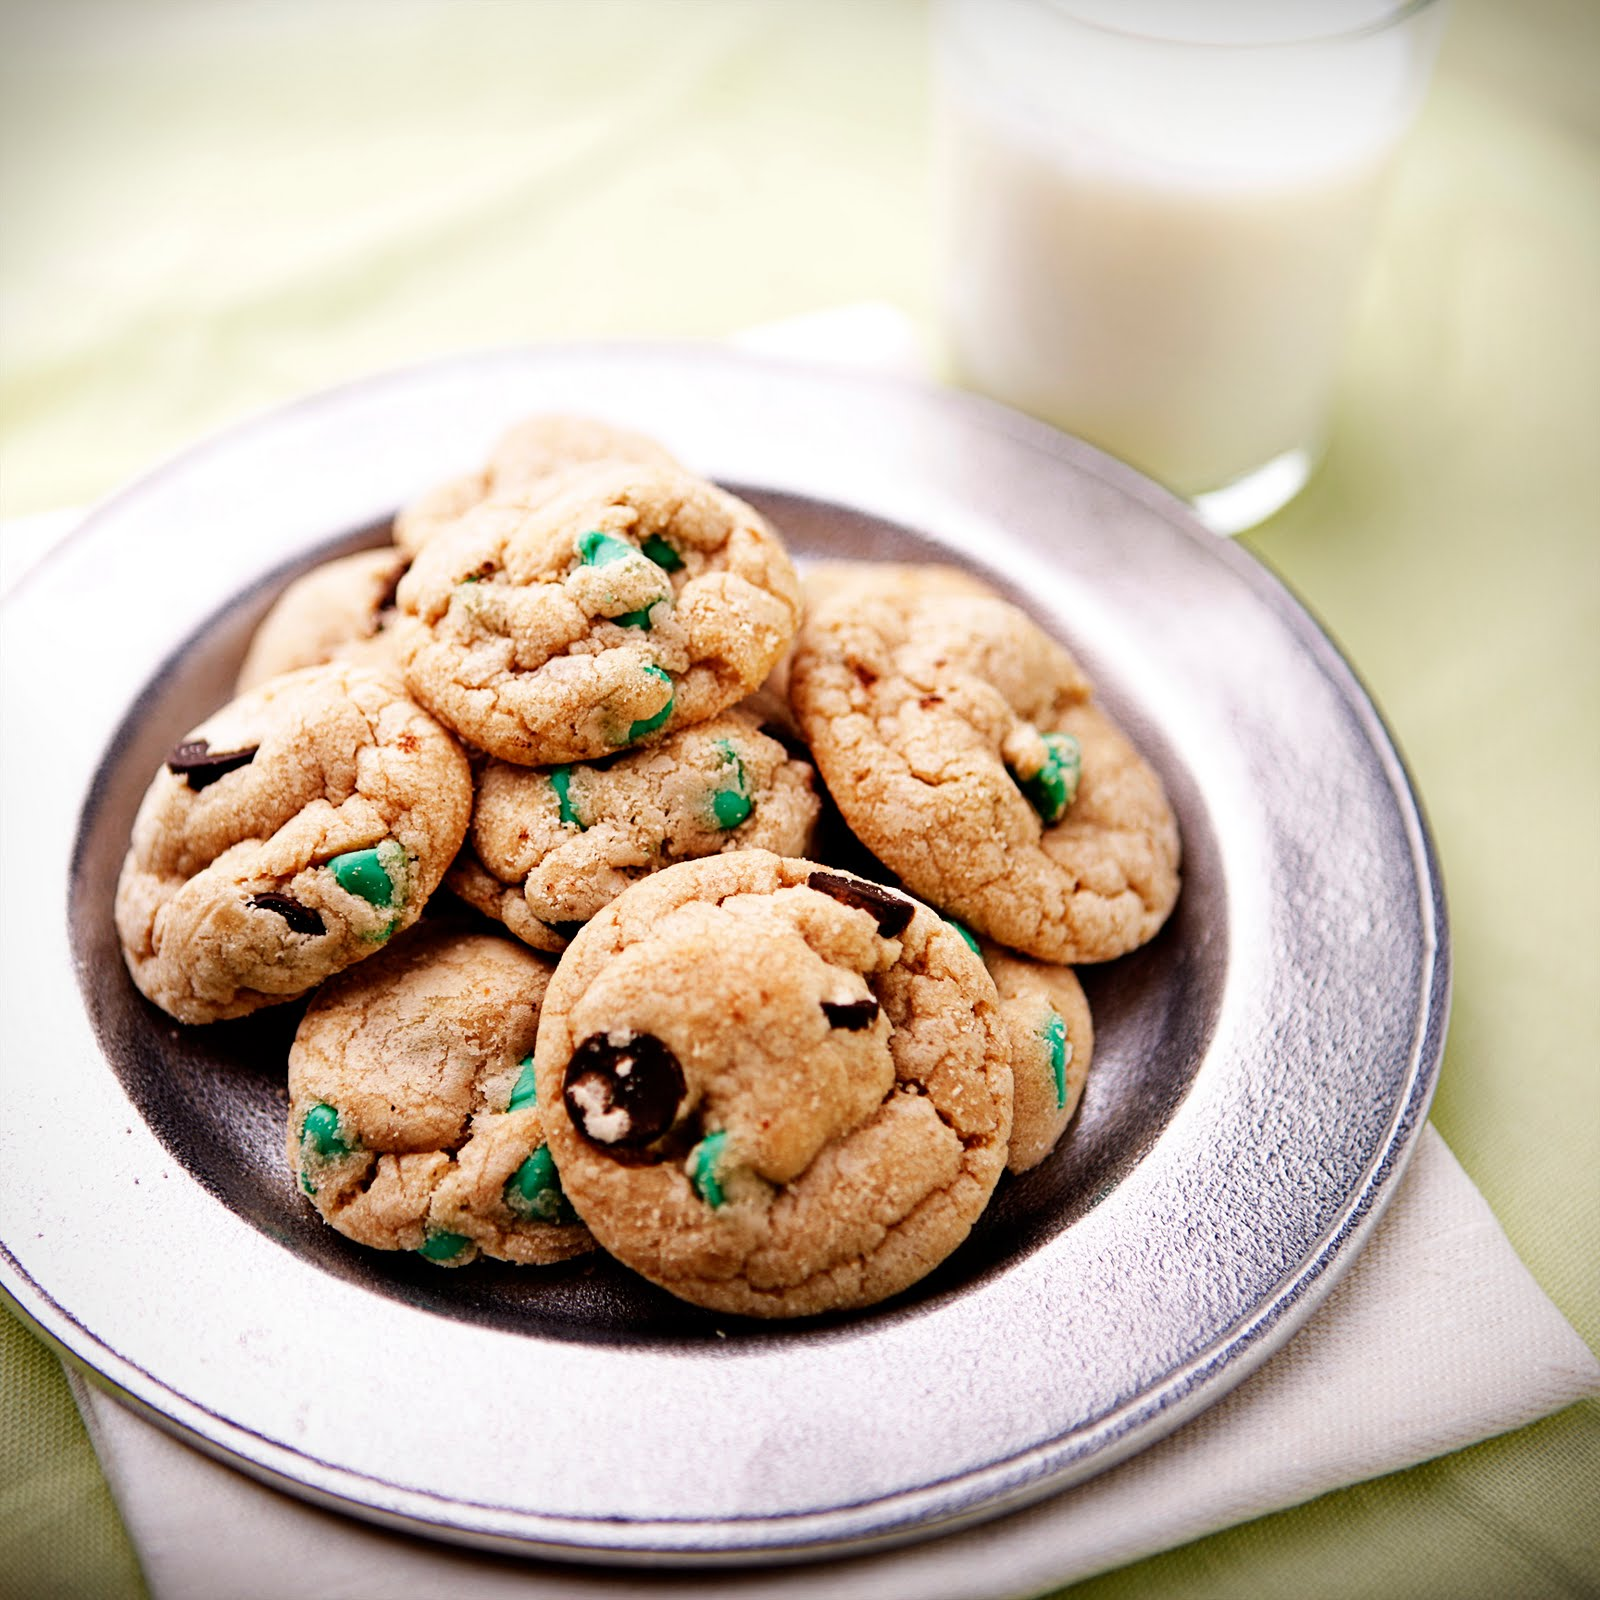 Confessions of a Bake-aholic: Mint Chocolate Chip Cookies